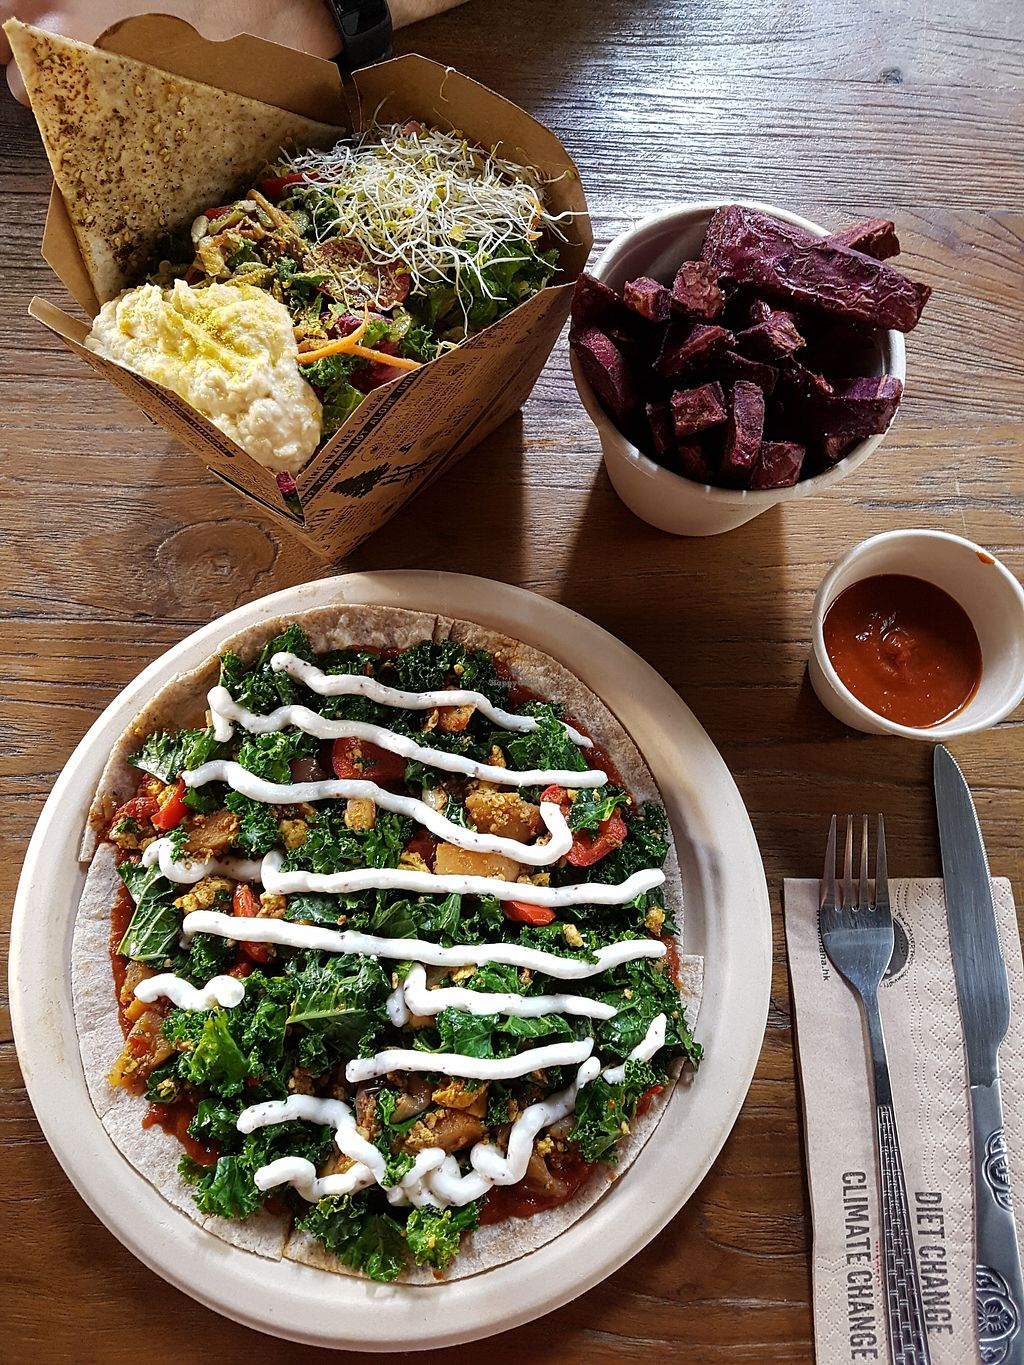 """Photo of Mana! Cafe - Sheung Wan  by <a href=""""/members/profile/SomethingVegan"""">SomethingVegan</a> <br/>Lunch - all vegan <br/> January 1, 2018  - <a href='/contact/abuse/image/61370/341759'>Report</a>"""